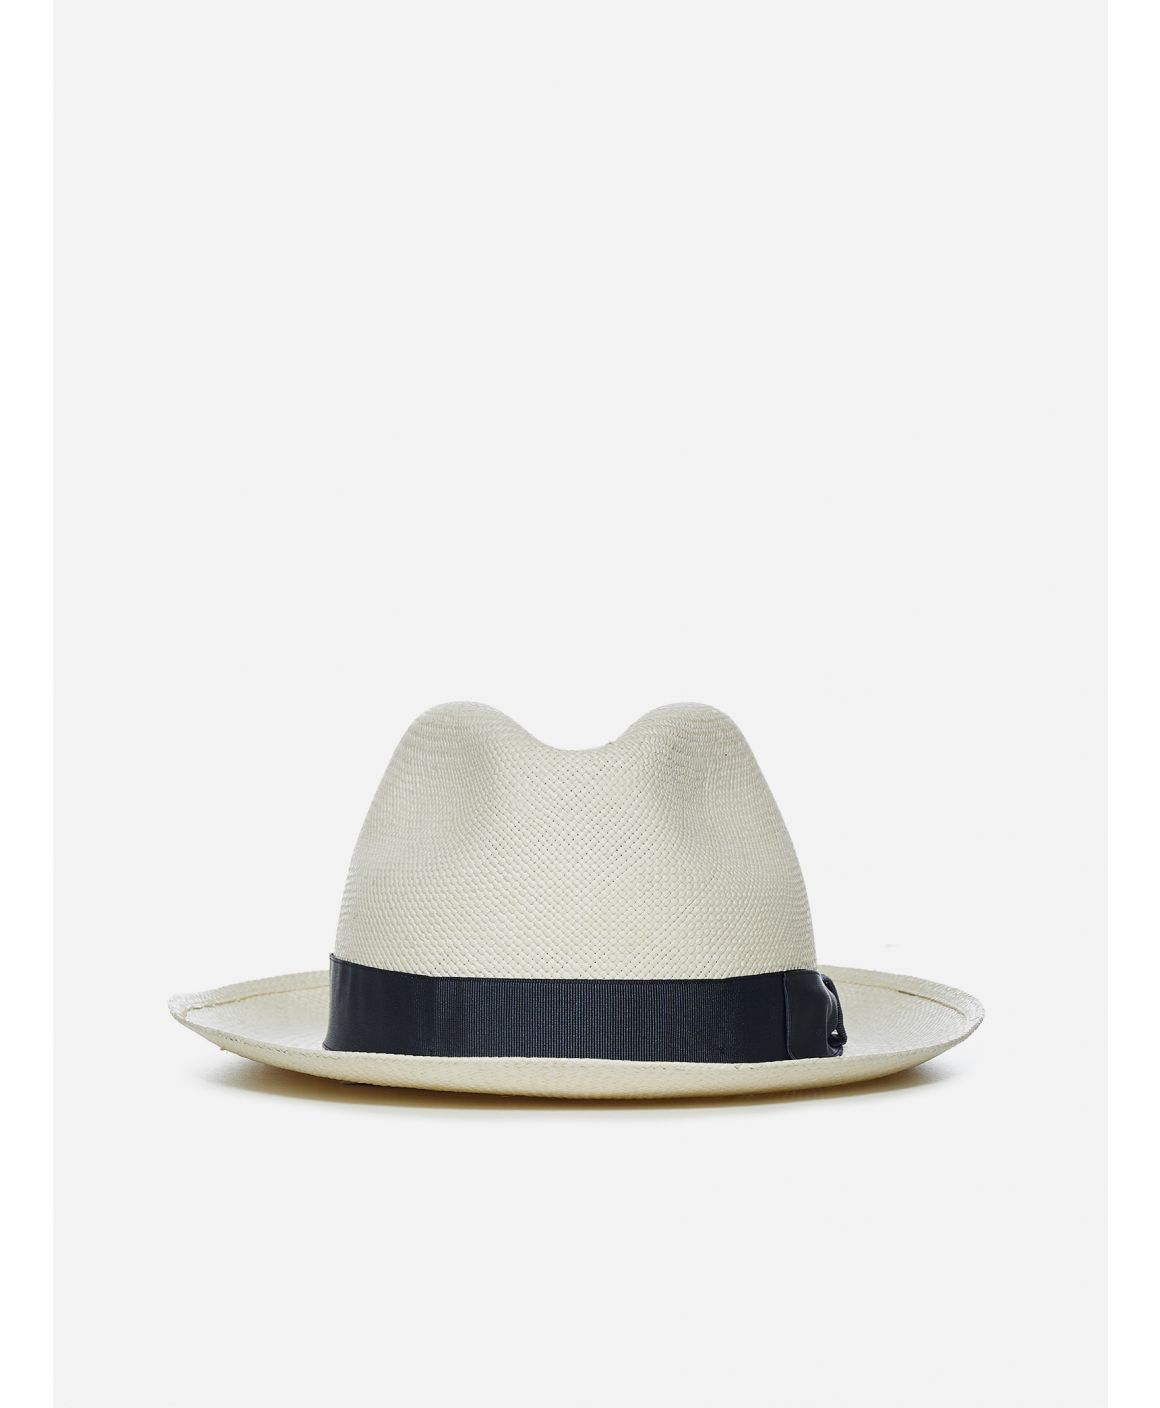 Diario Quito medium brim Panama hat